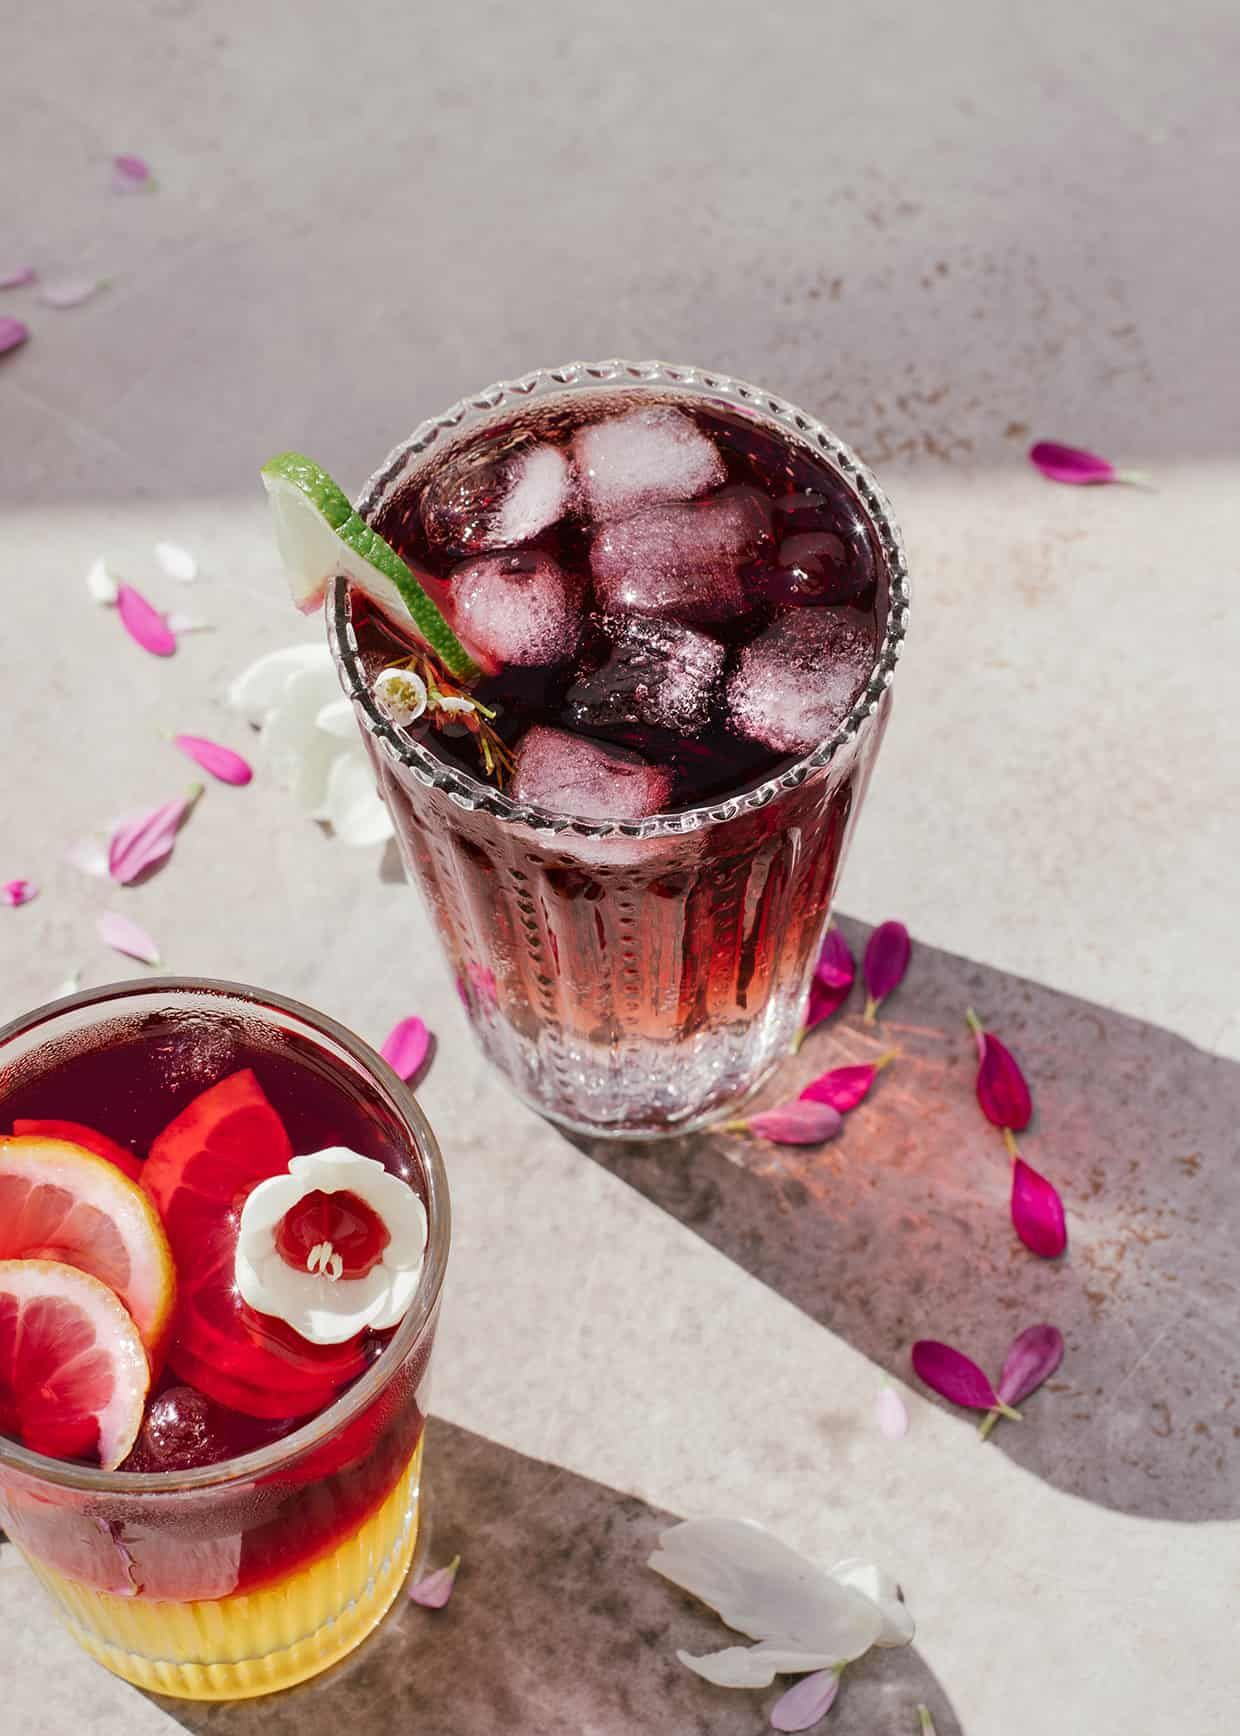 Red Wine Spritzer 3 Ways Recipe In 2020 Red Wine Spritzer Wine Spritzer Easy Drinks To Make